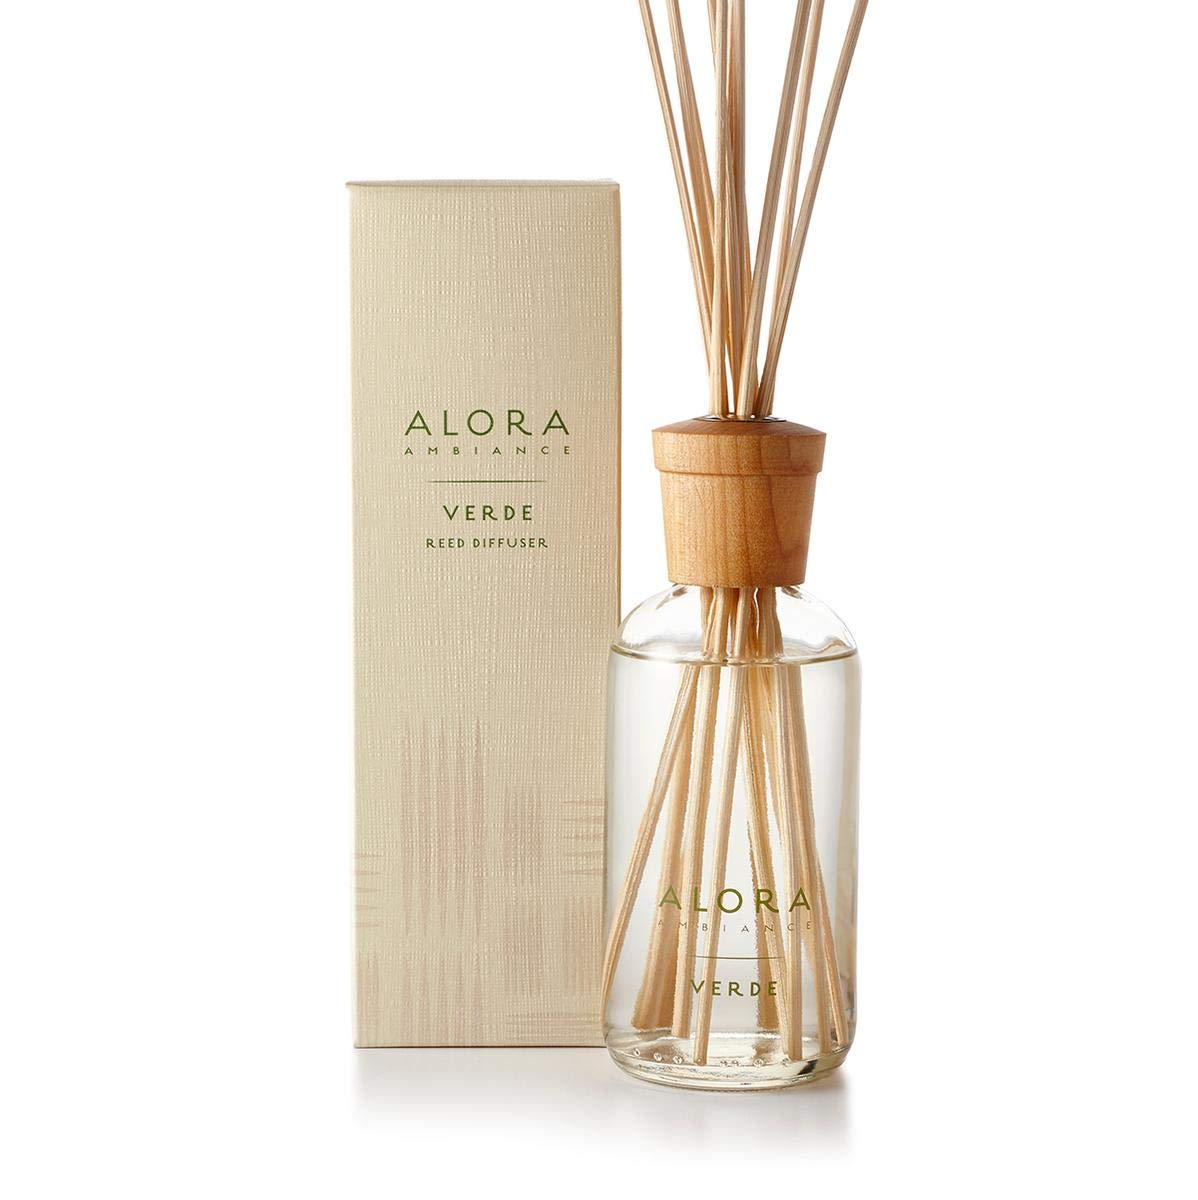 Alora Ambiance Reed Diffuser, 8 Oz by AloraAmbiance